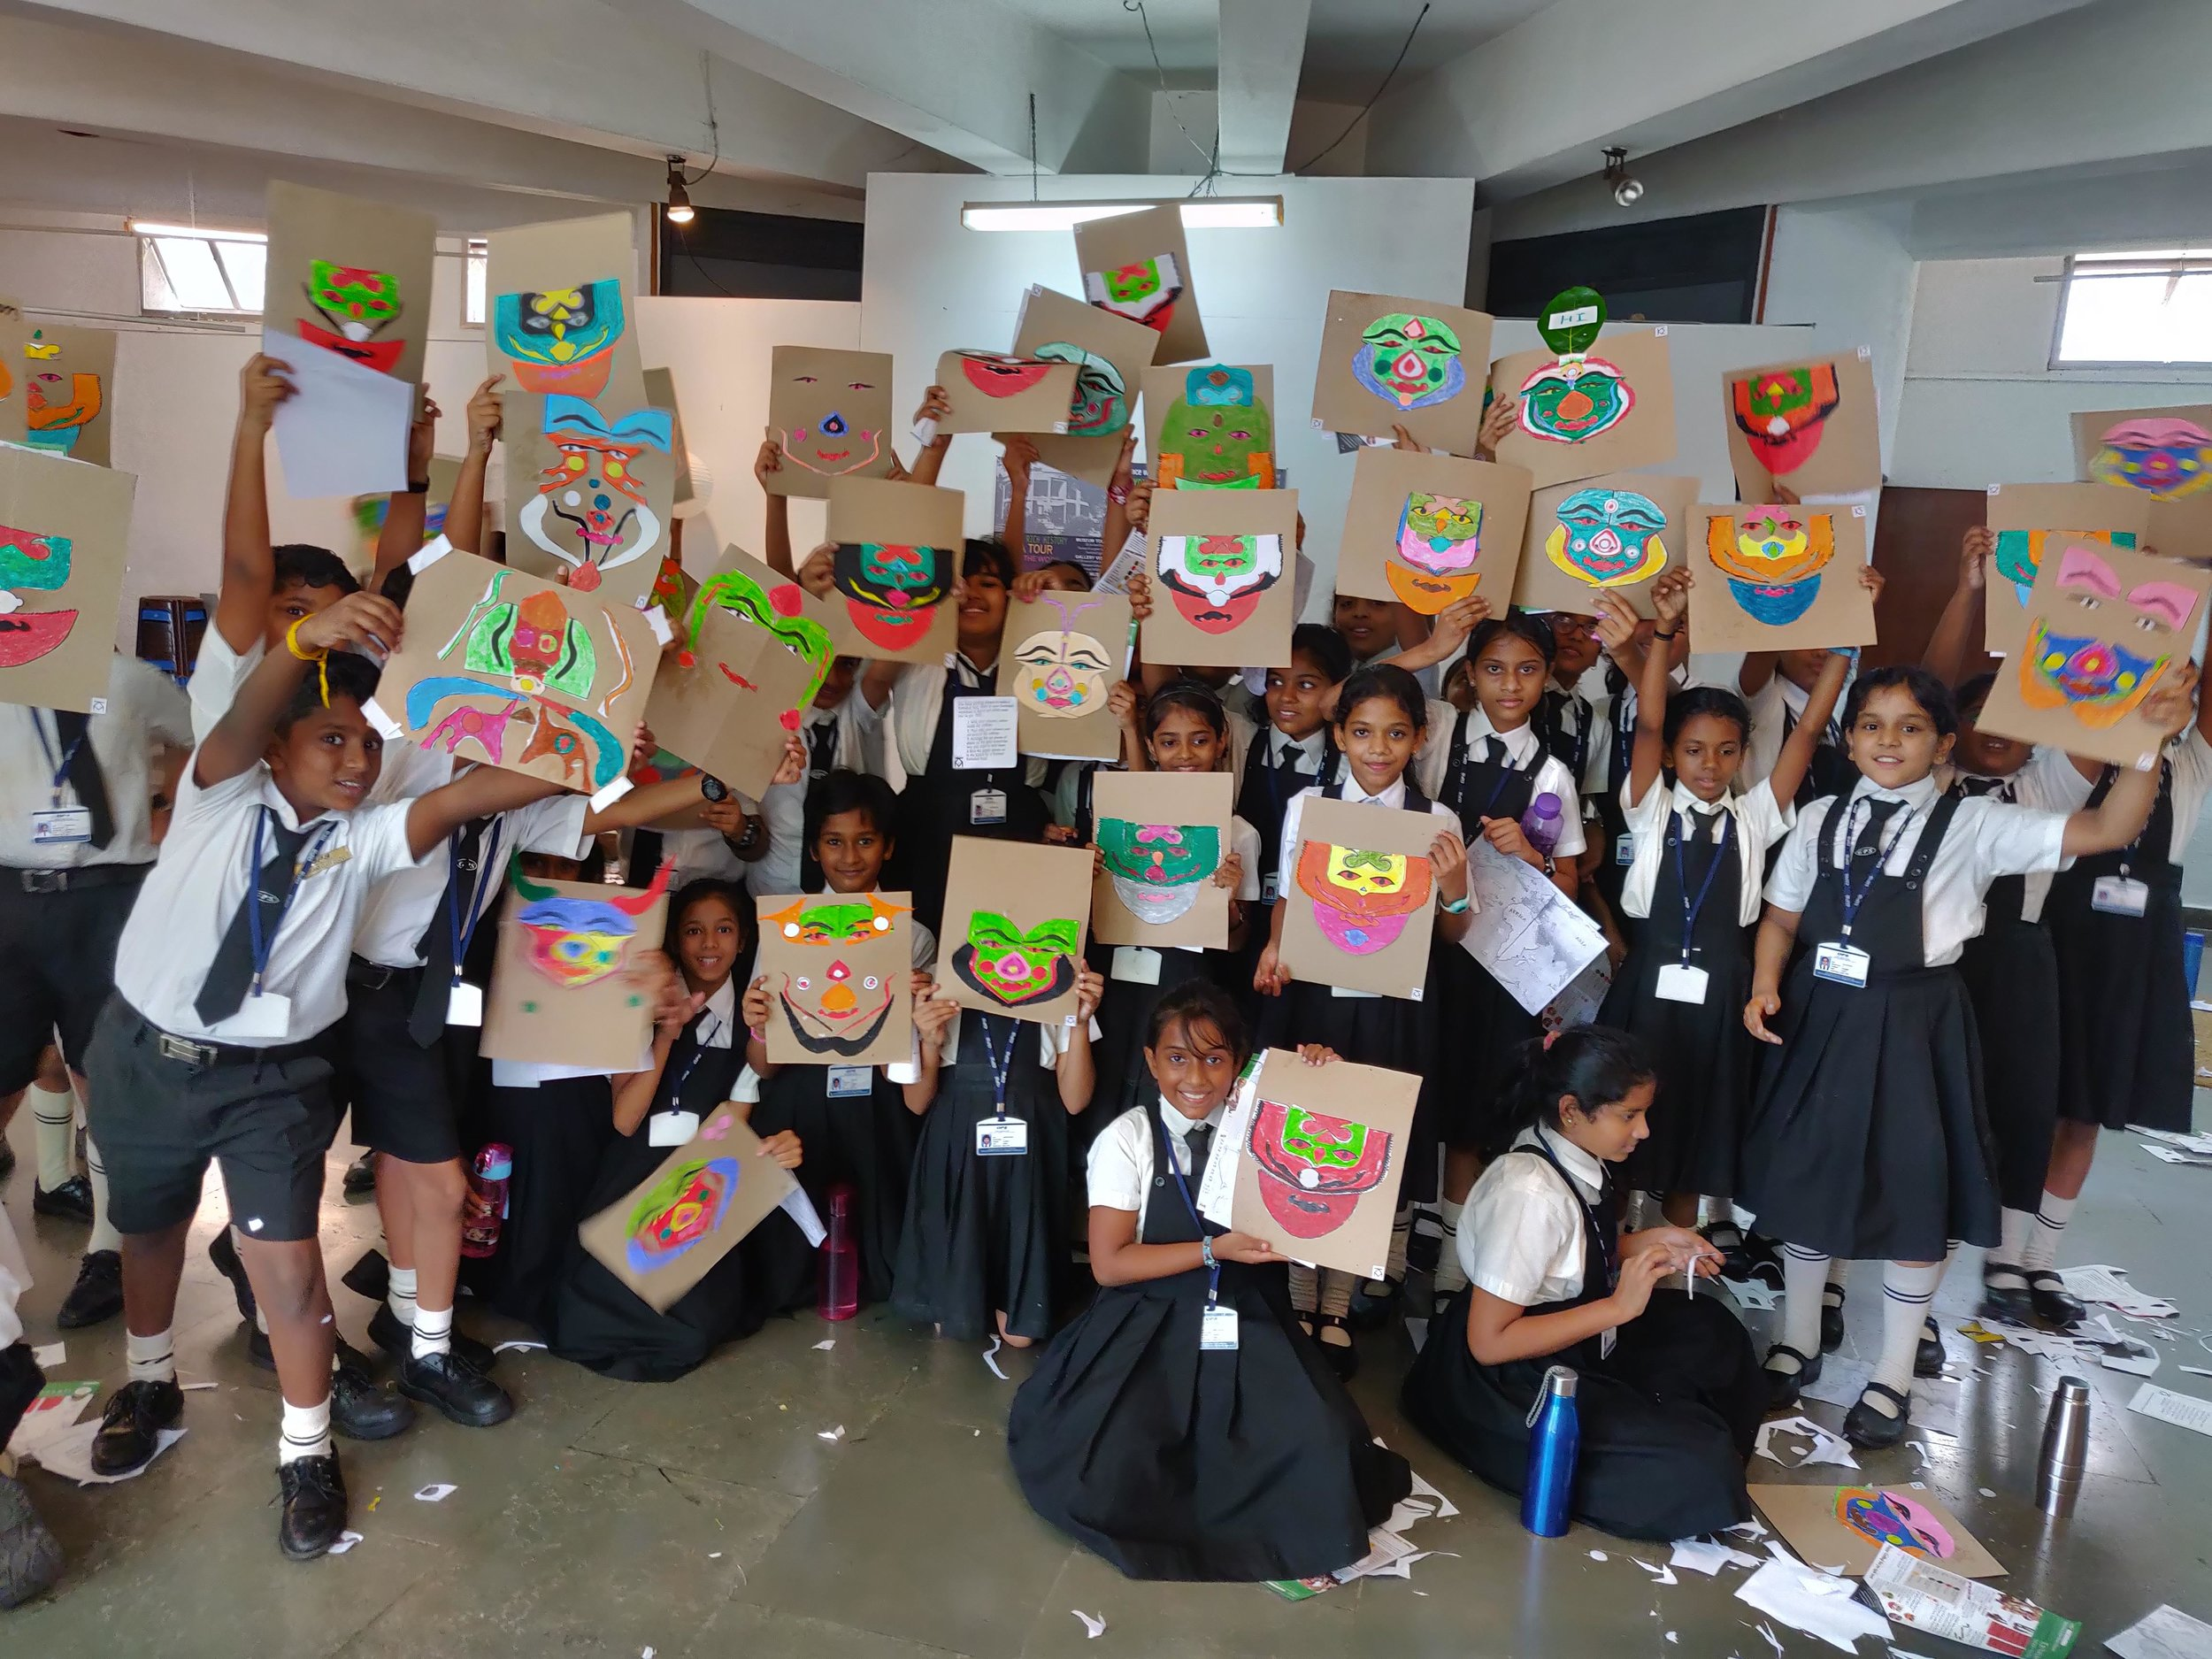 With a sense of creativity and play that was just mind-blowing, these 11 year olds took the Kathakali worksheet to the next level.